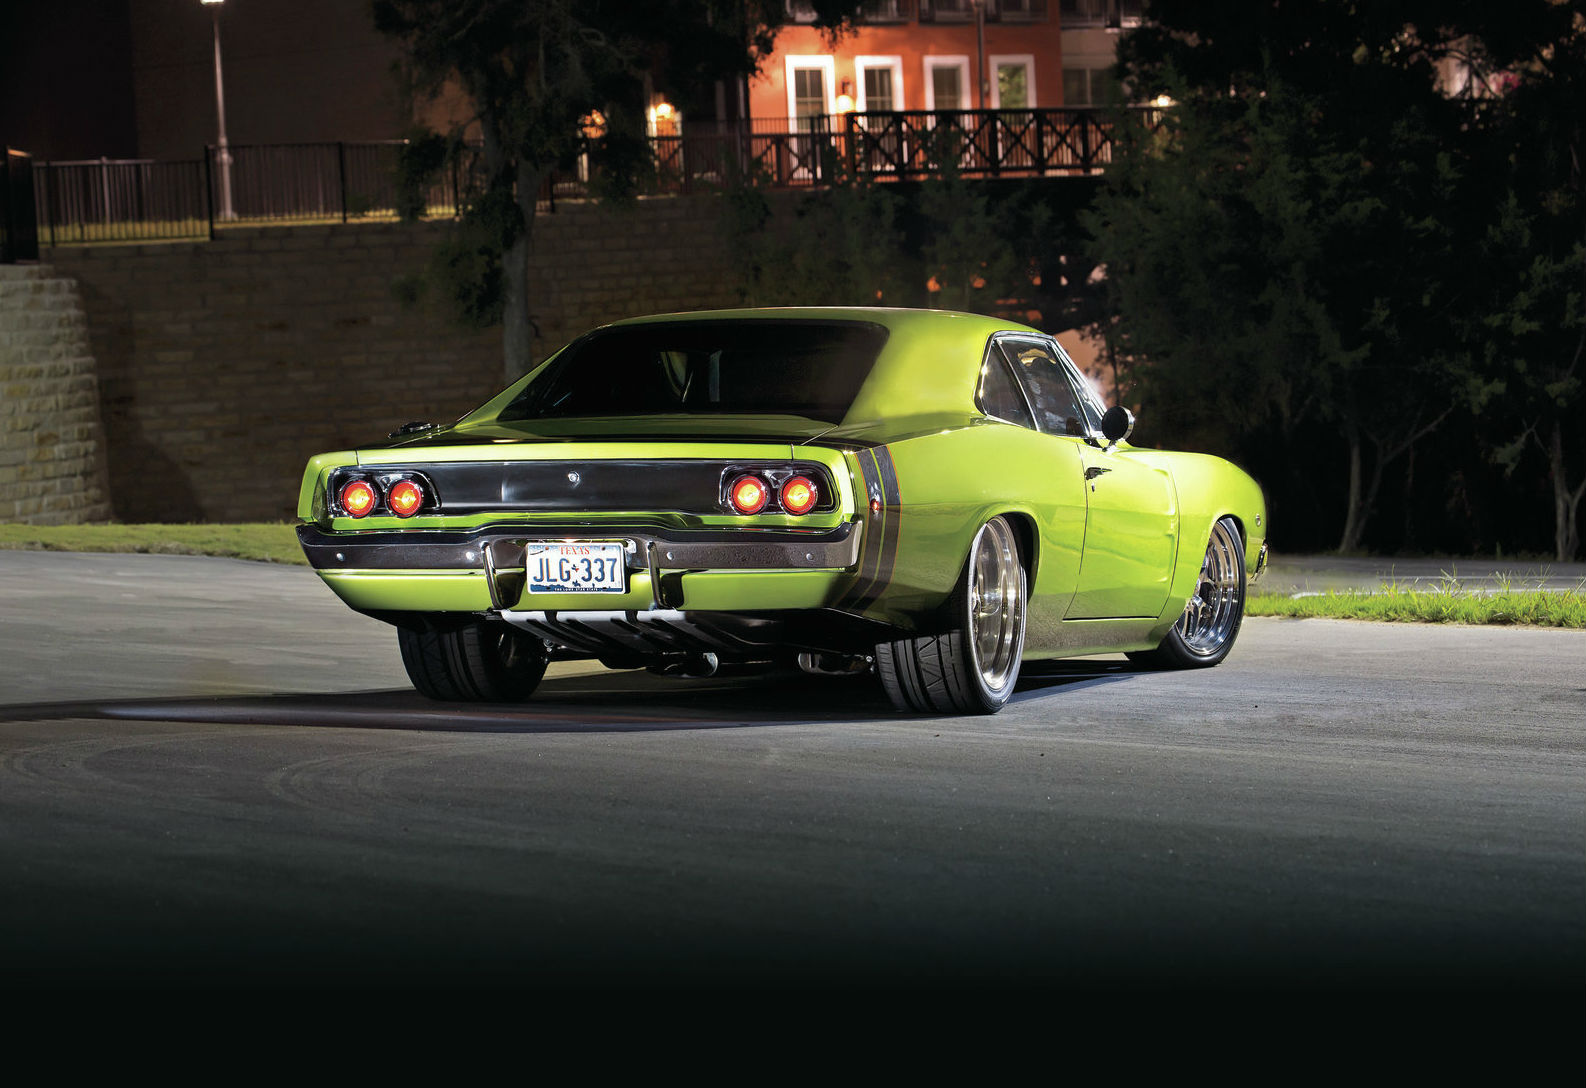 1968 Dodge Charger Slammed! Is This The Coolest Charger Ever? | Muscle